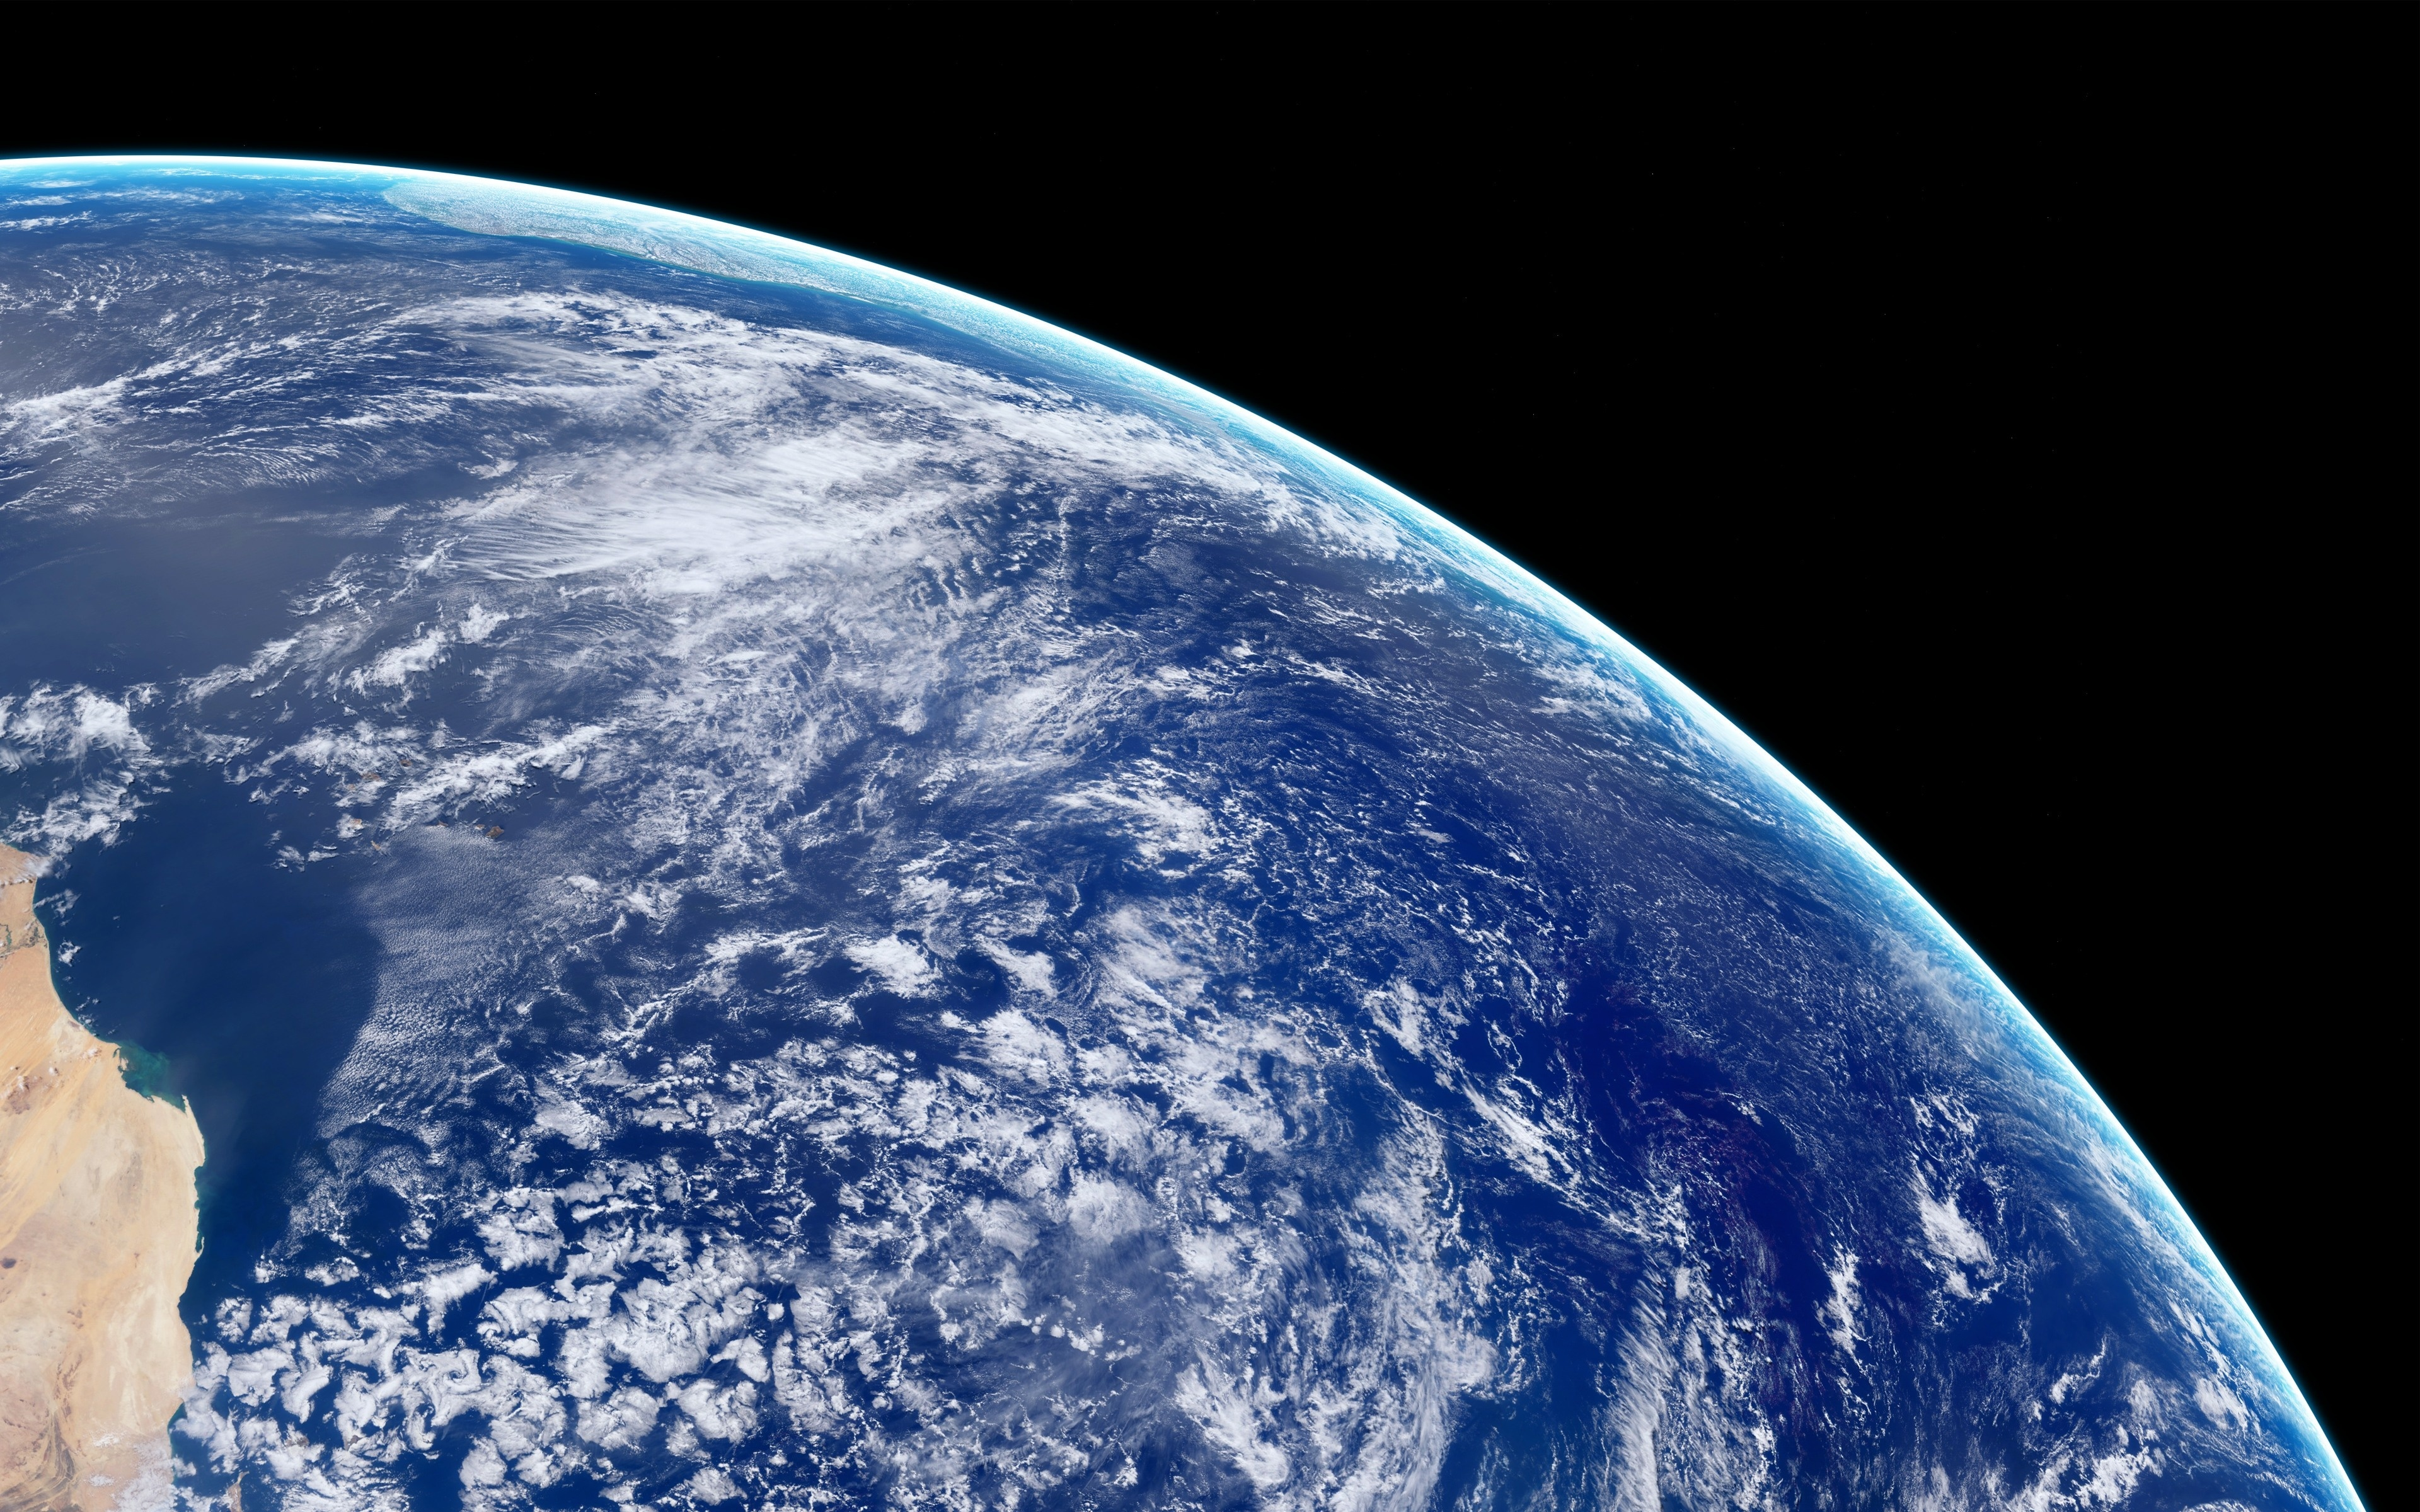 Download 3840x2400 Wallpaper Clouds Earth View From Space 4k